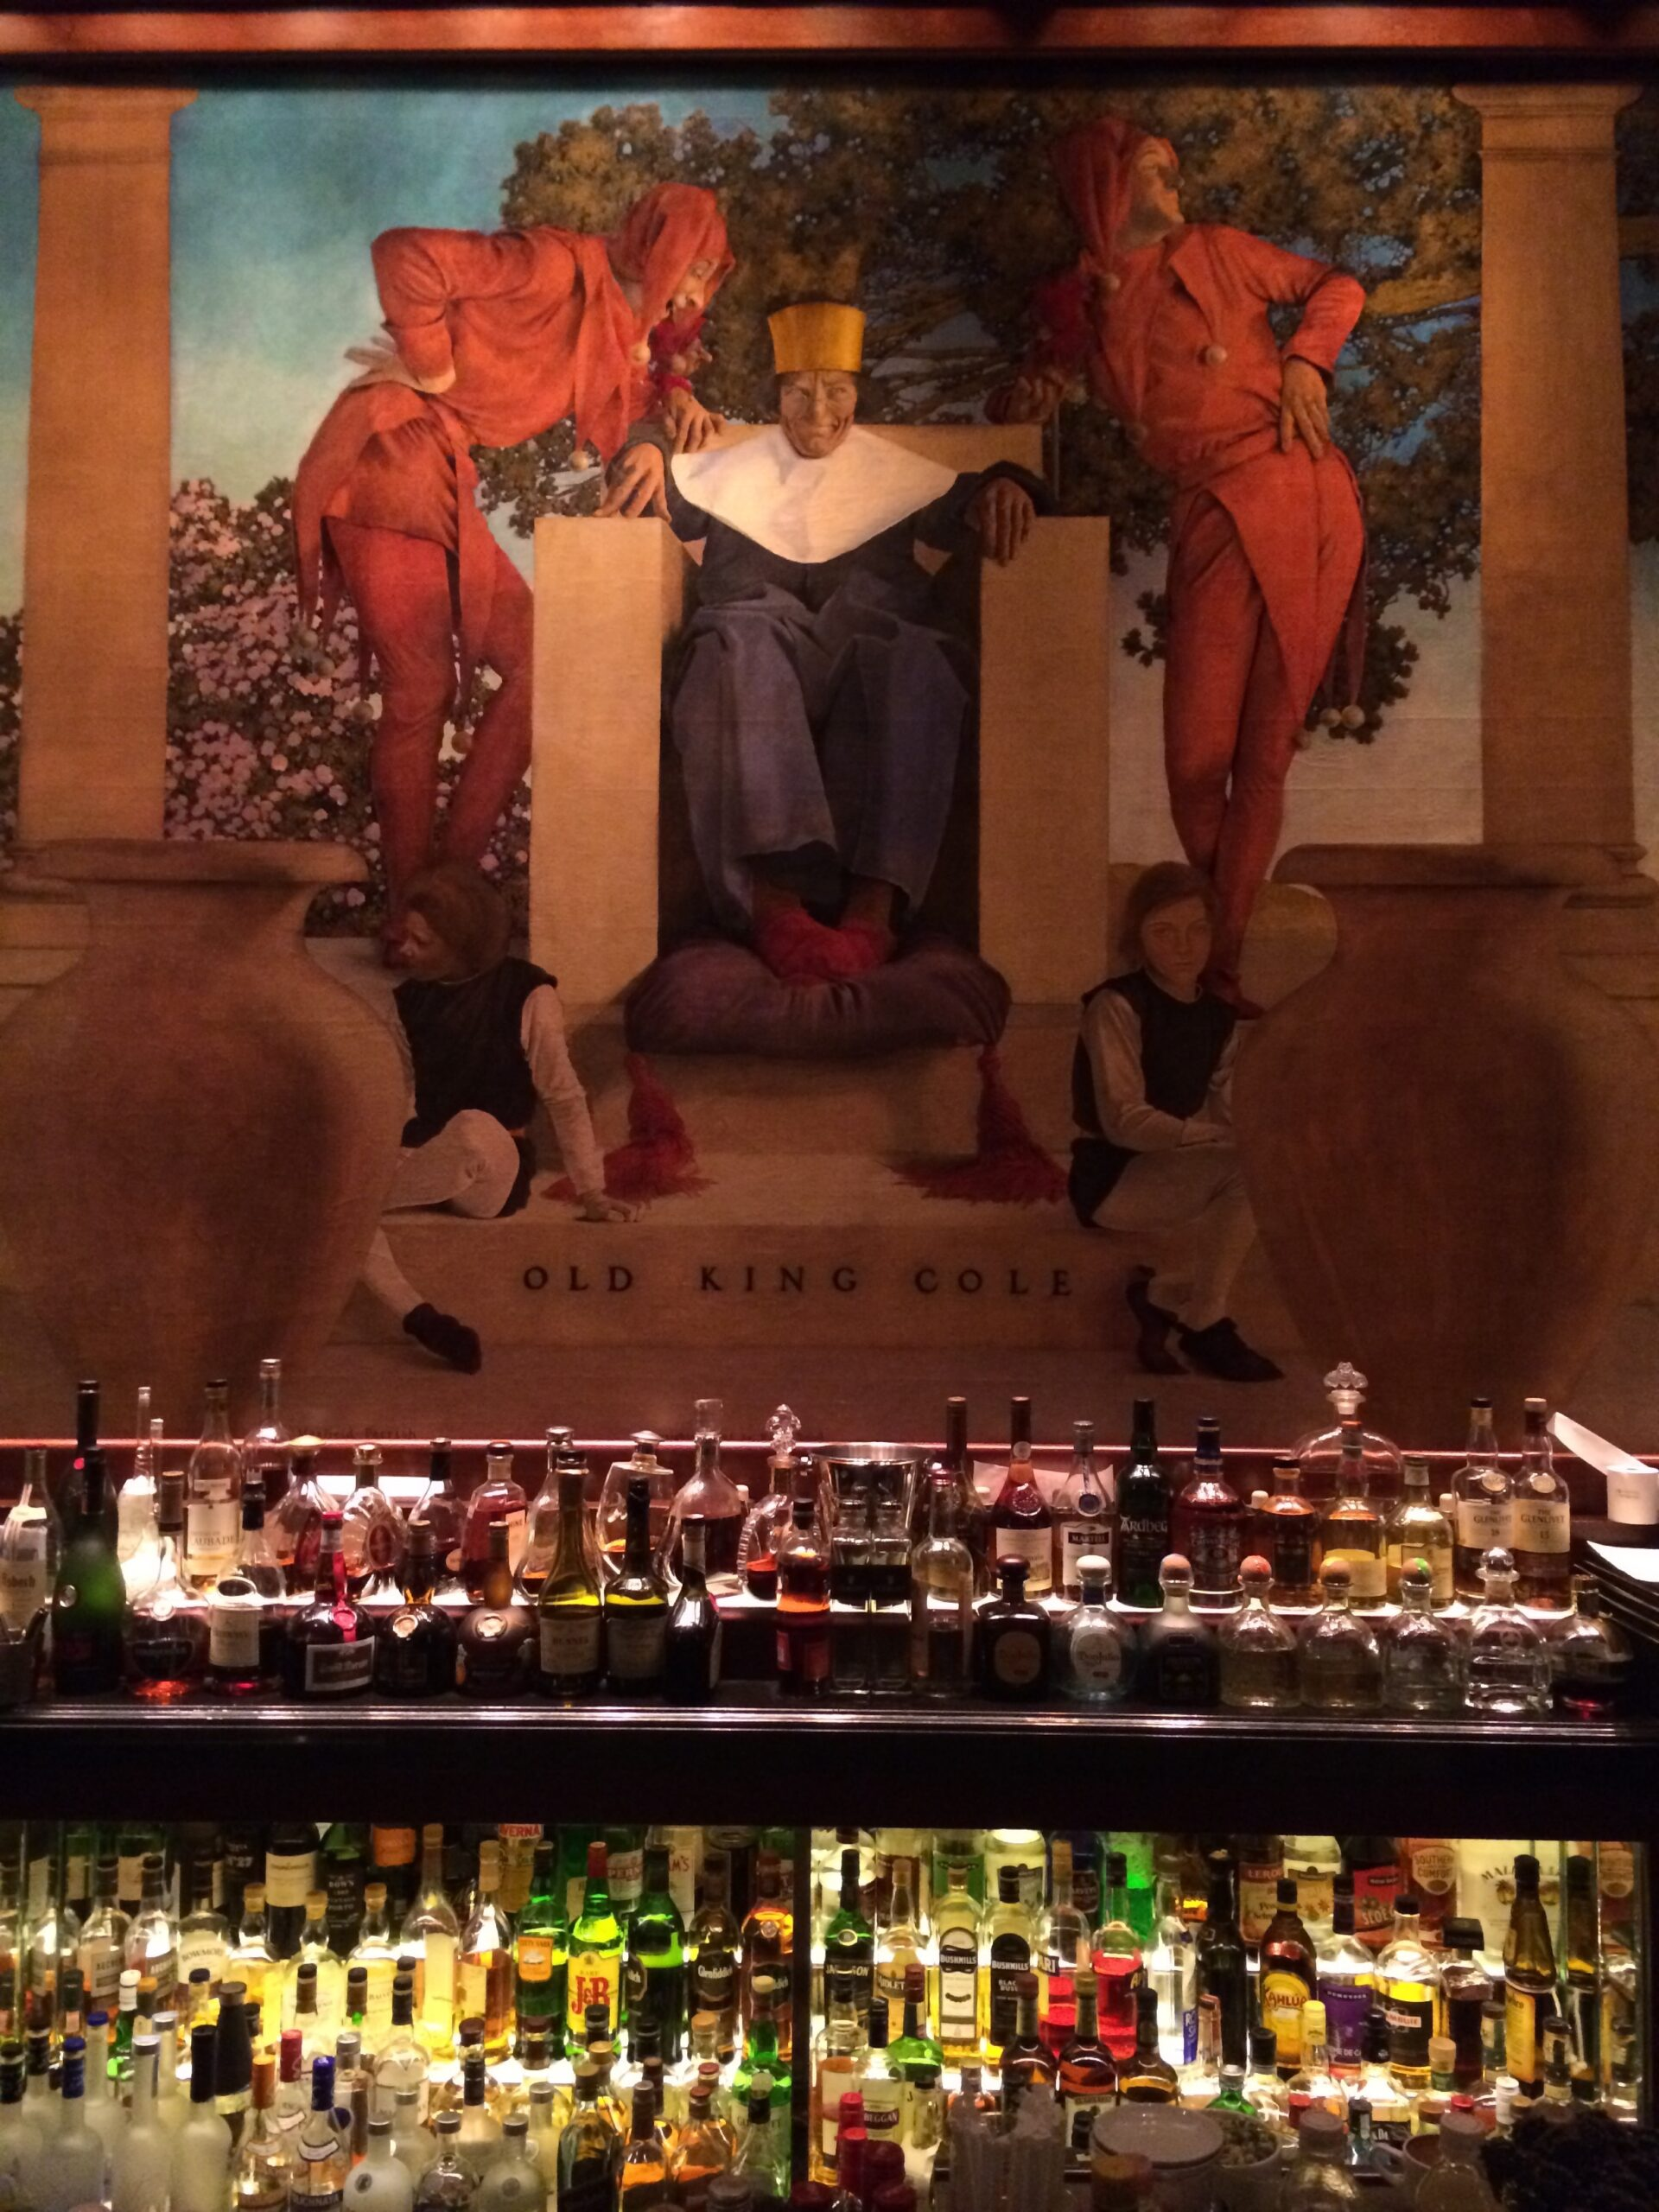 Maxfield Parrish Mural The King Cole bar - St. Regis hotel - New York